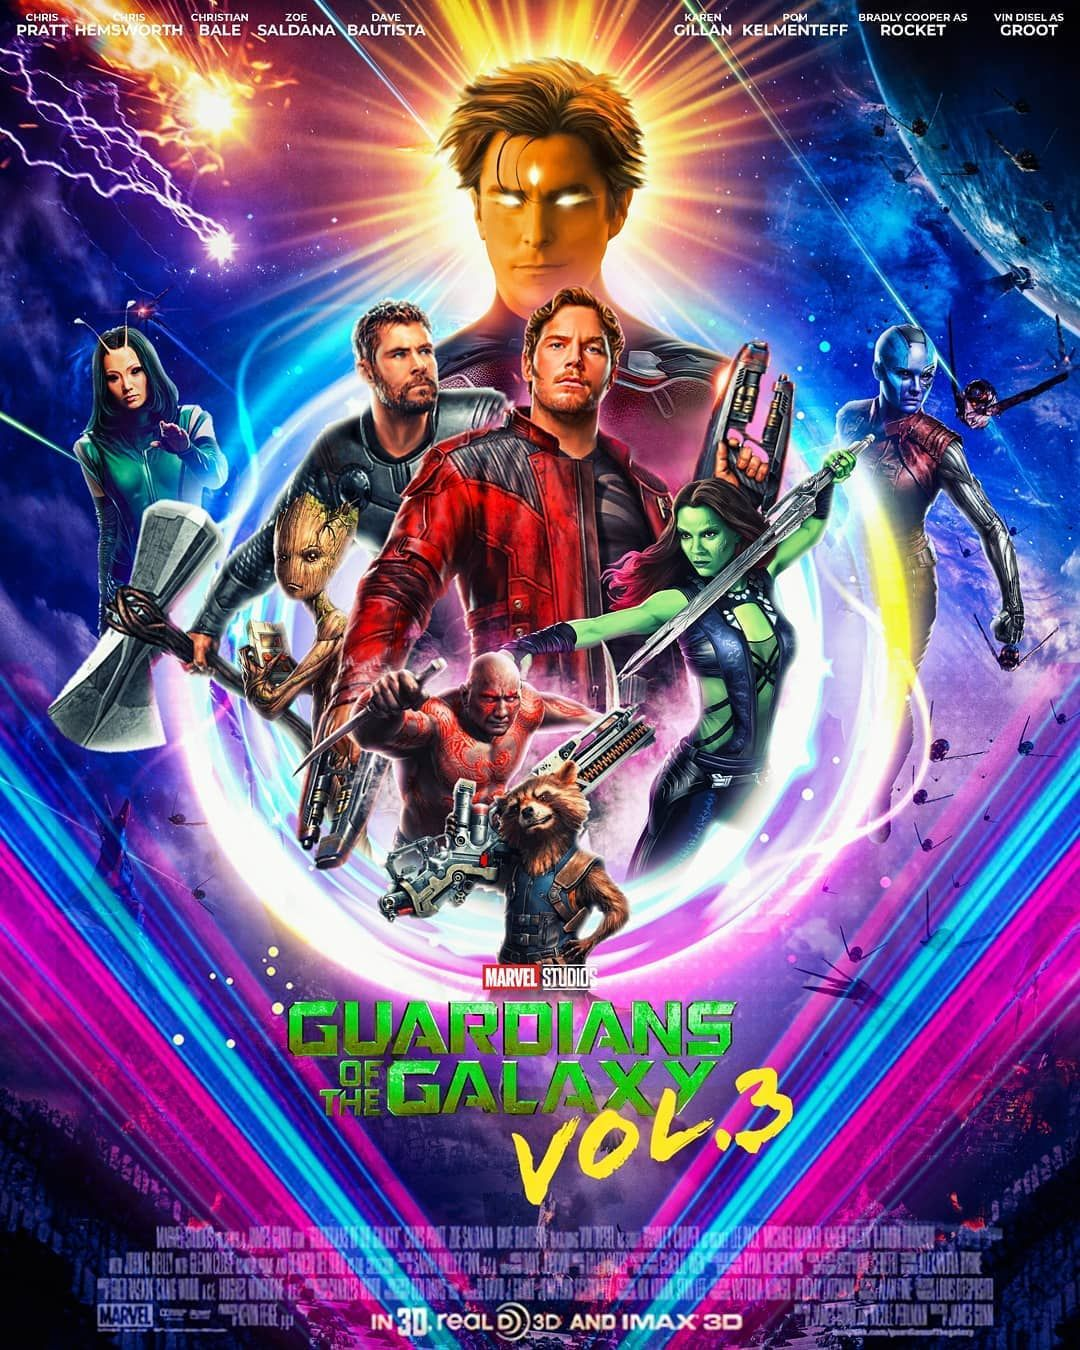 Pin By Papa Smurf On Guardians Of The Galaxy Guardians Of The Galaxy Poster Avengers